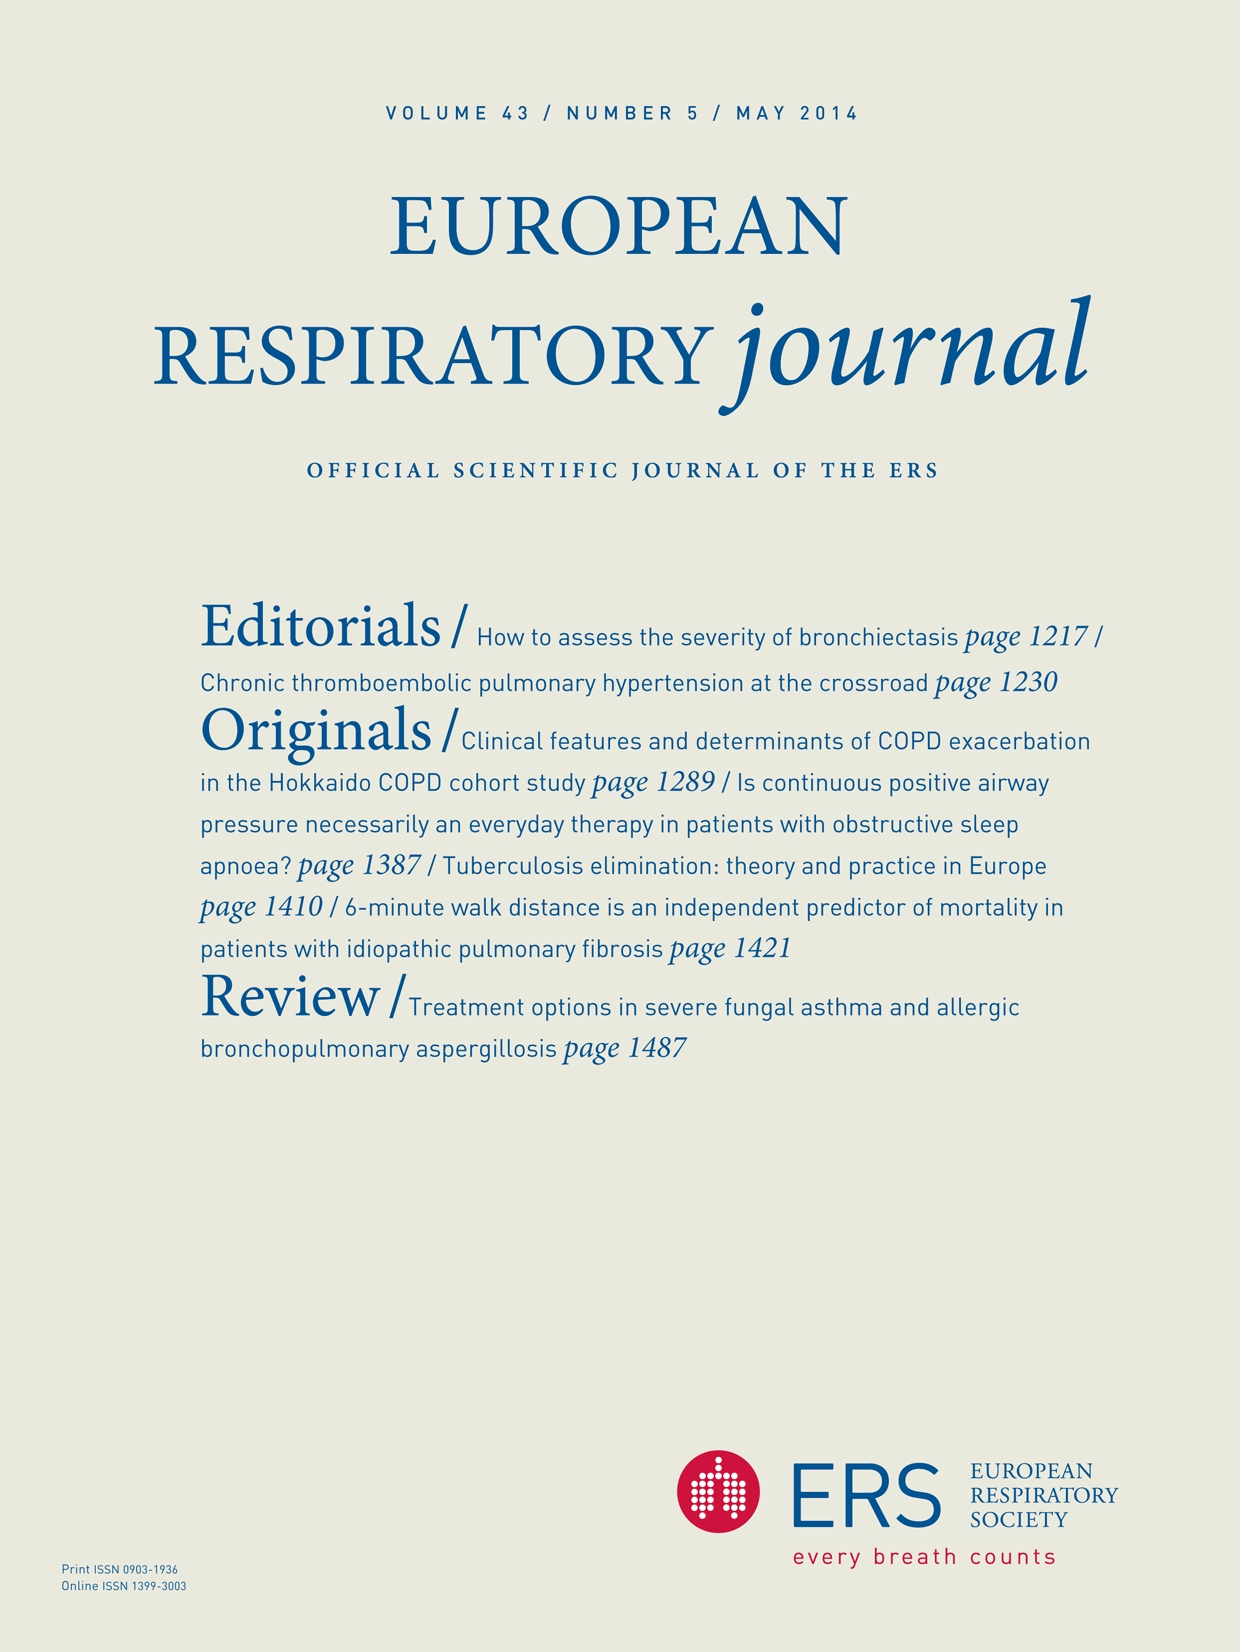 clinical features and determinants of copd exacerbation in the